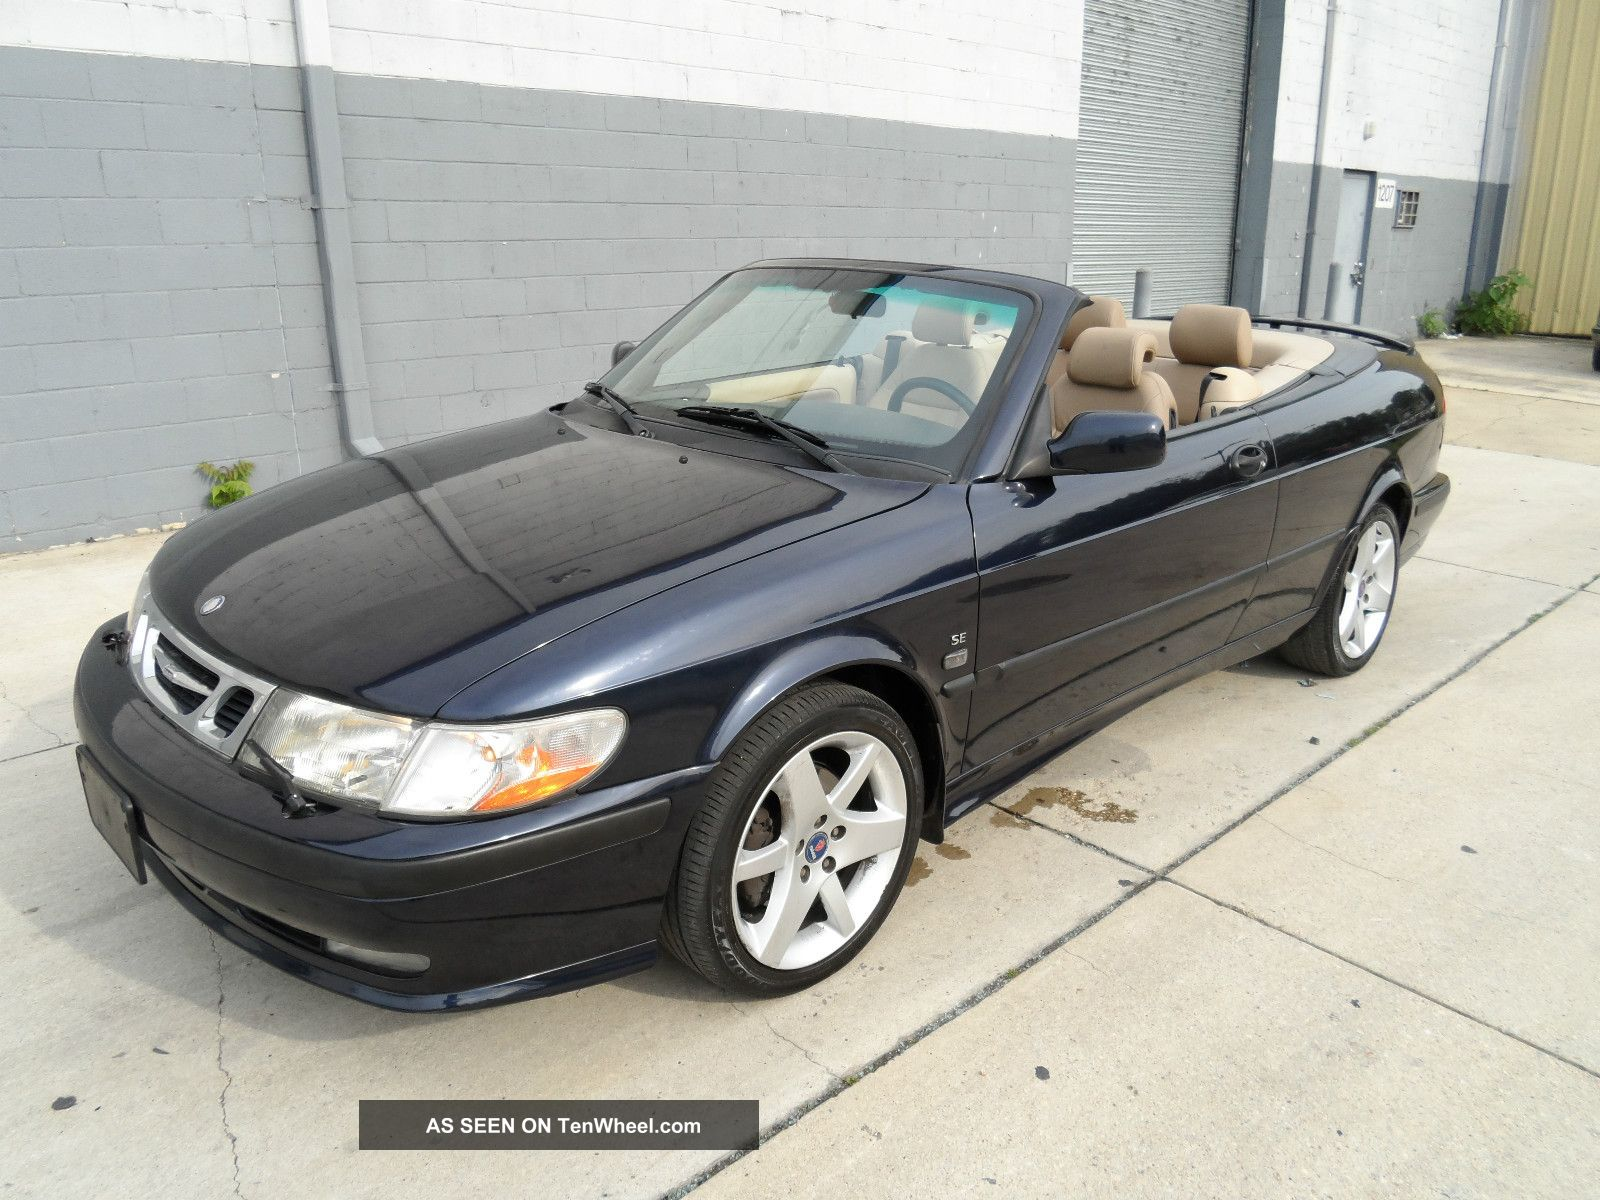 2002 Saab 9 - 3 Se Convertible 119k 5speed Turbo Sporty Summer Car 9-3 photo